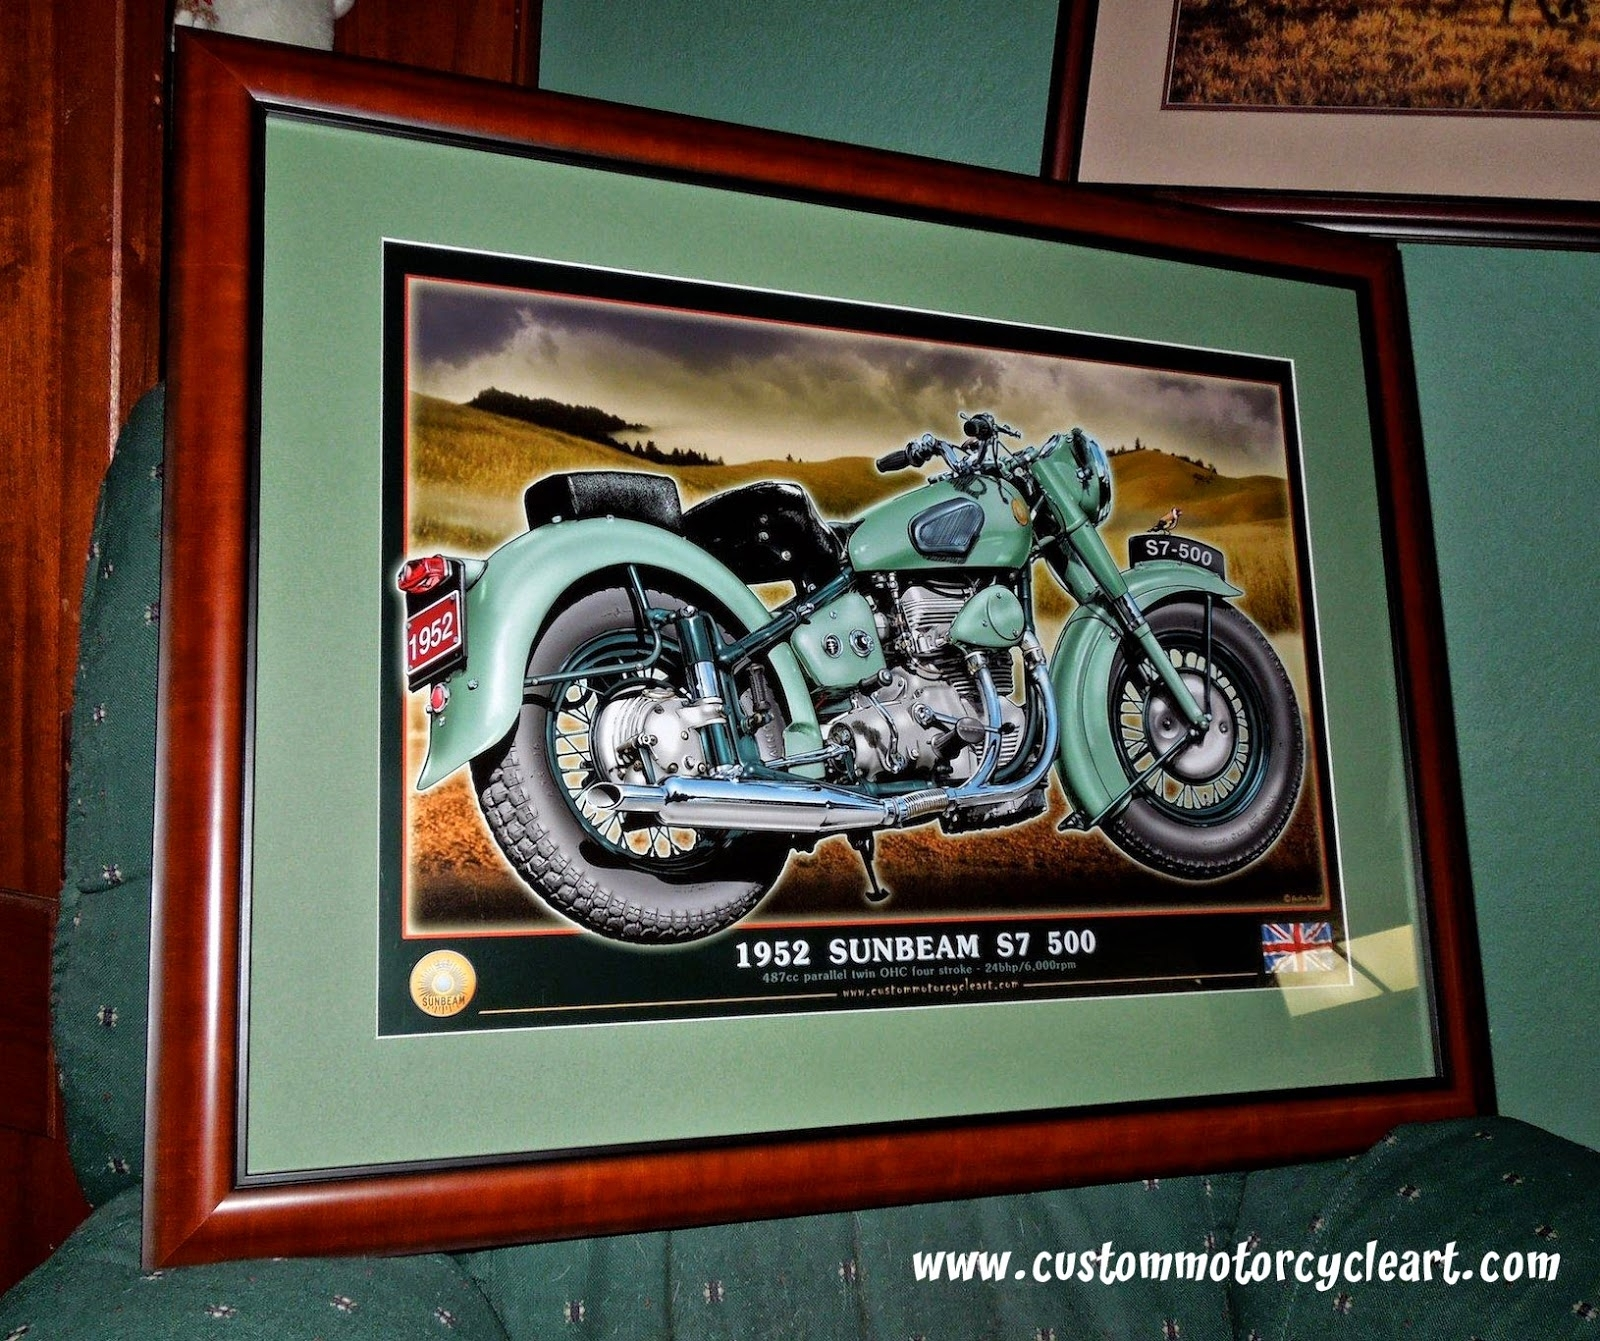 Www.custommotorcycleart: Motorcycle Art Print Framed (View 10 of 15)